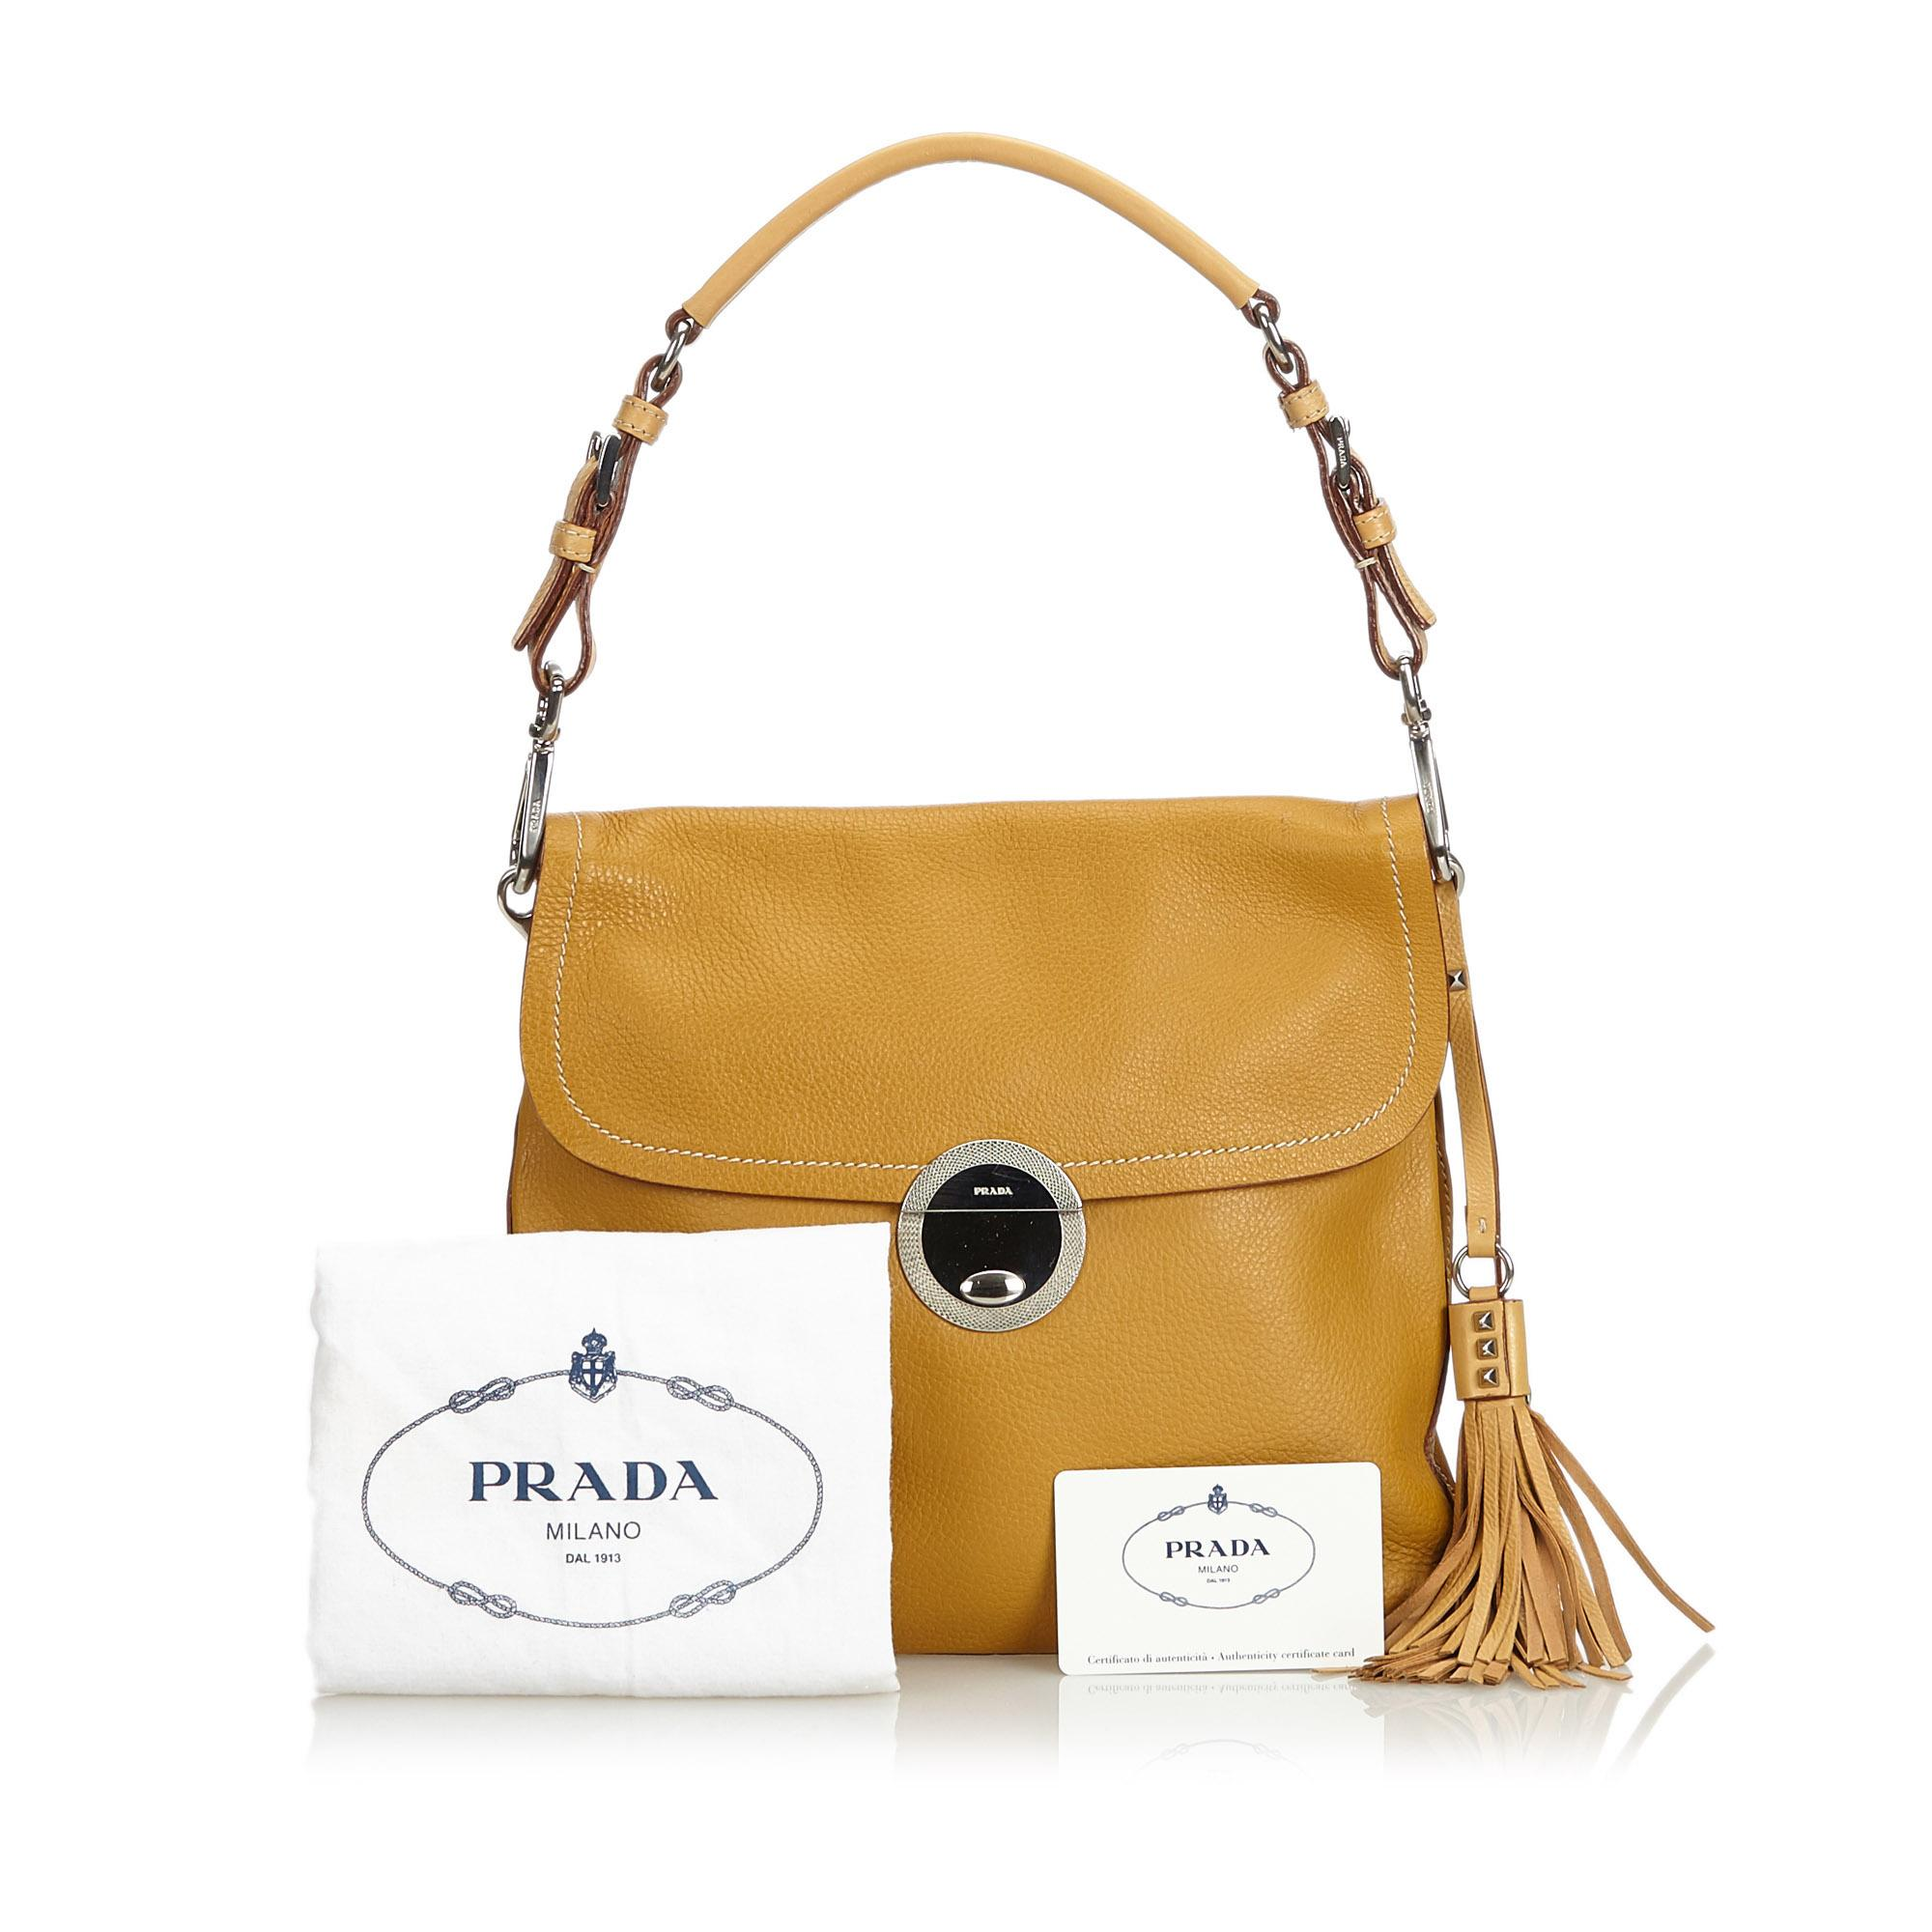 9840841c9fb3 Prada Brown Leather Shoulder Bag Italy w/ Dust BagAuthenticity Card For  Sale at 1stdibs